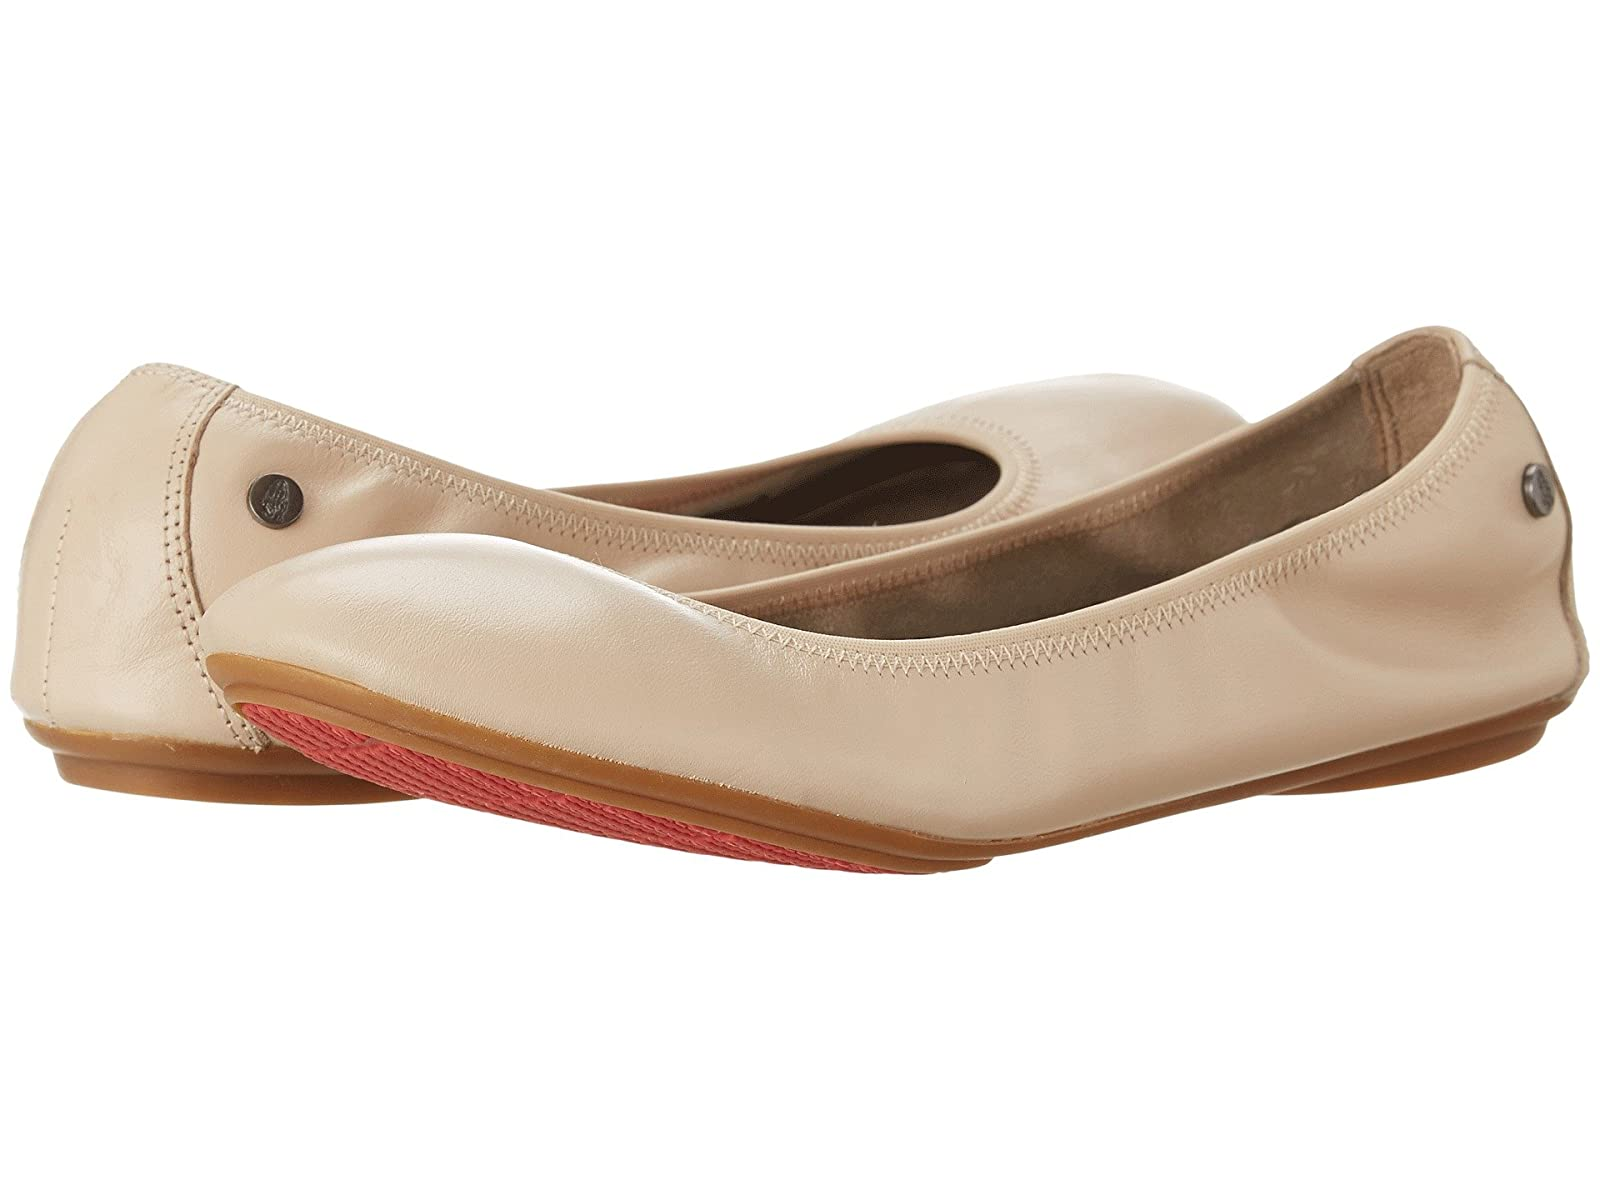 Hush Puppies Chaste BalletAtmospheric grades have affordable shoes